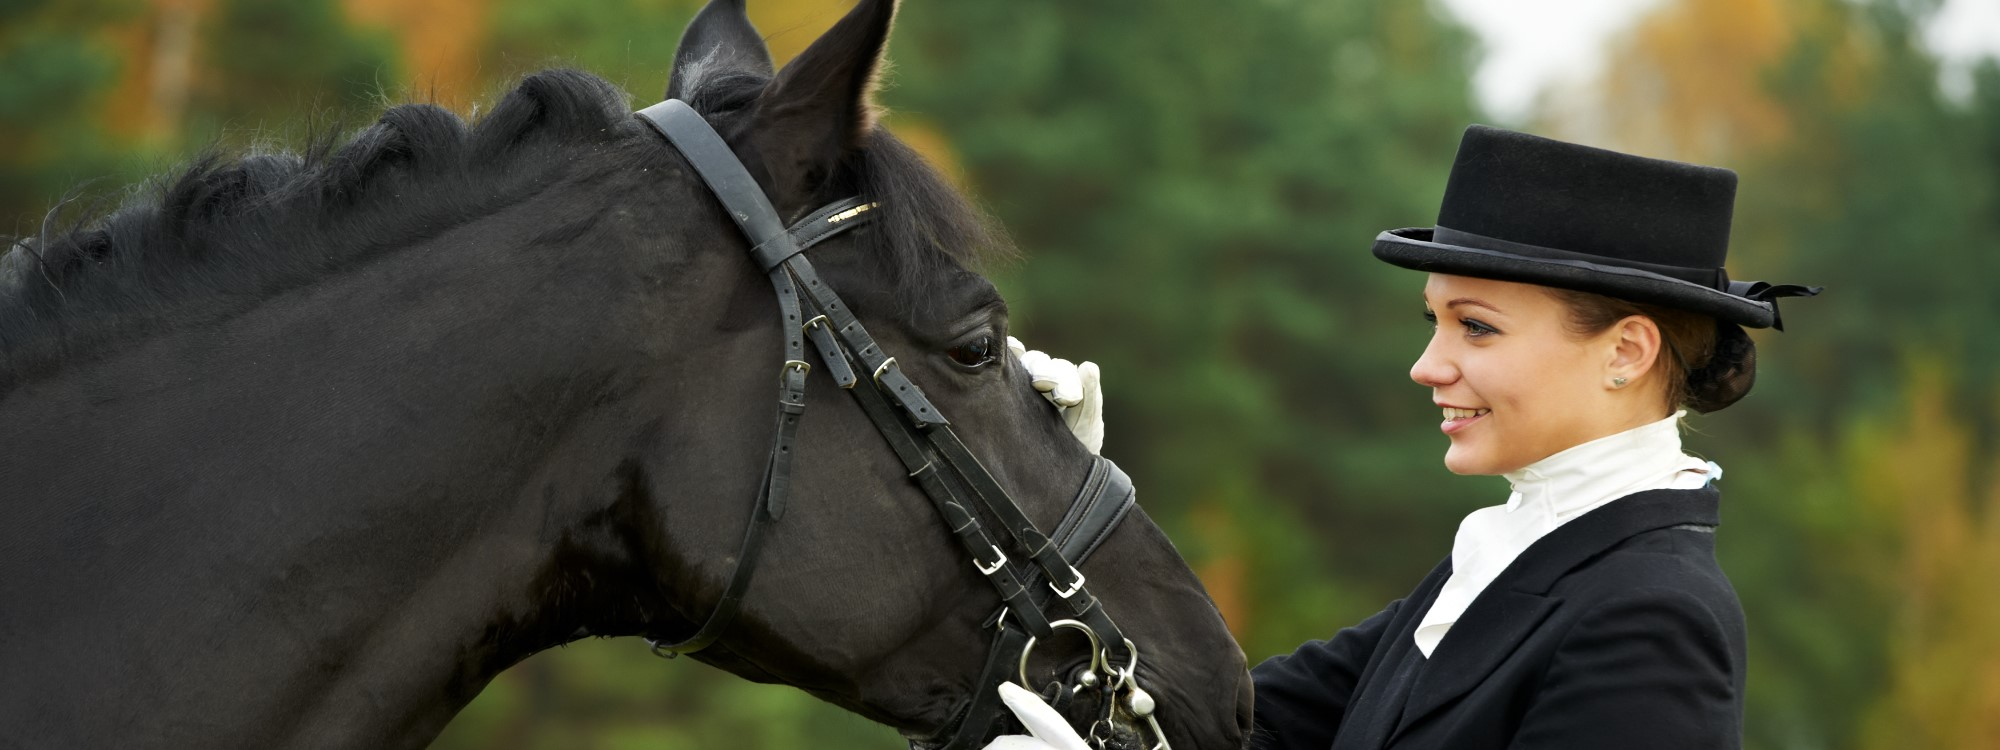 Dressage rider and her black horse